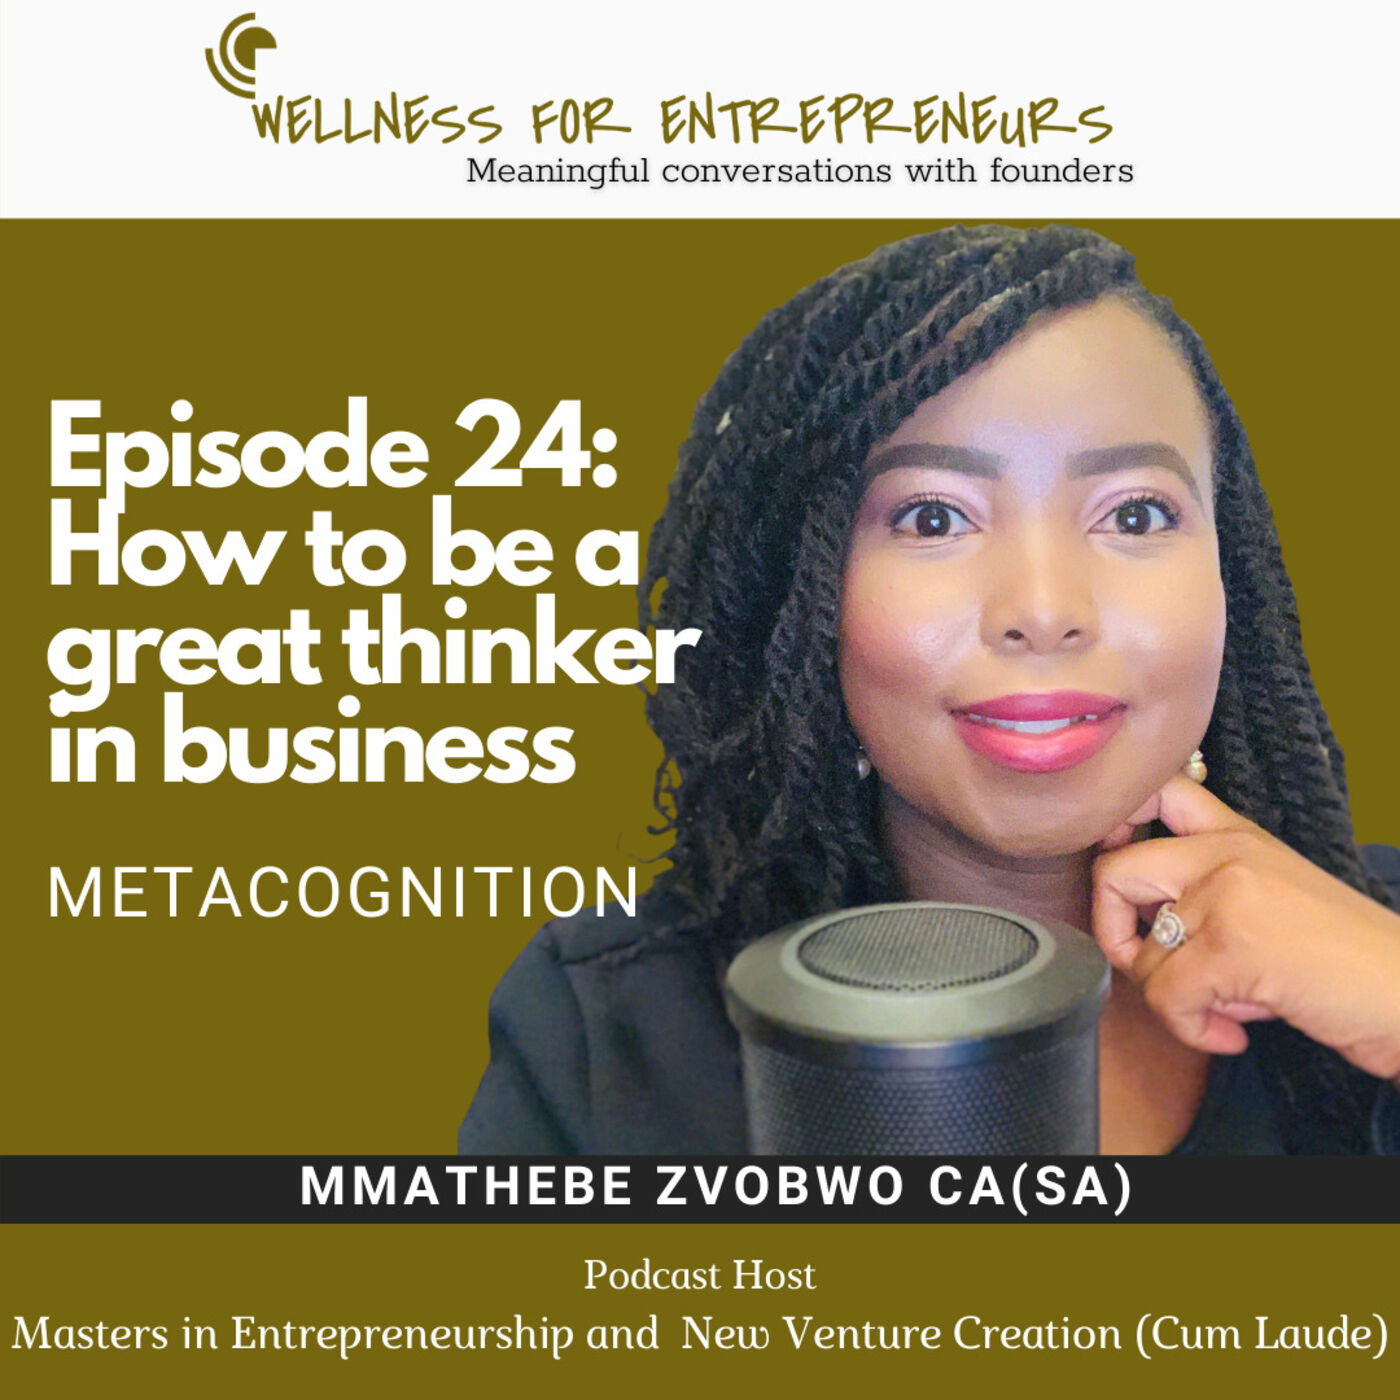 Episode 24: How to be a great thinker in business - metacognition